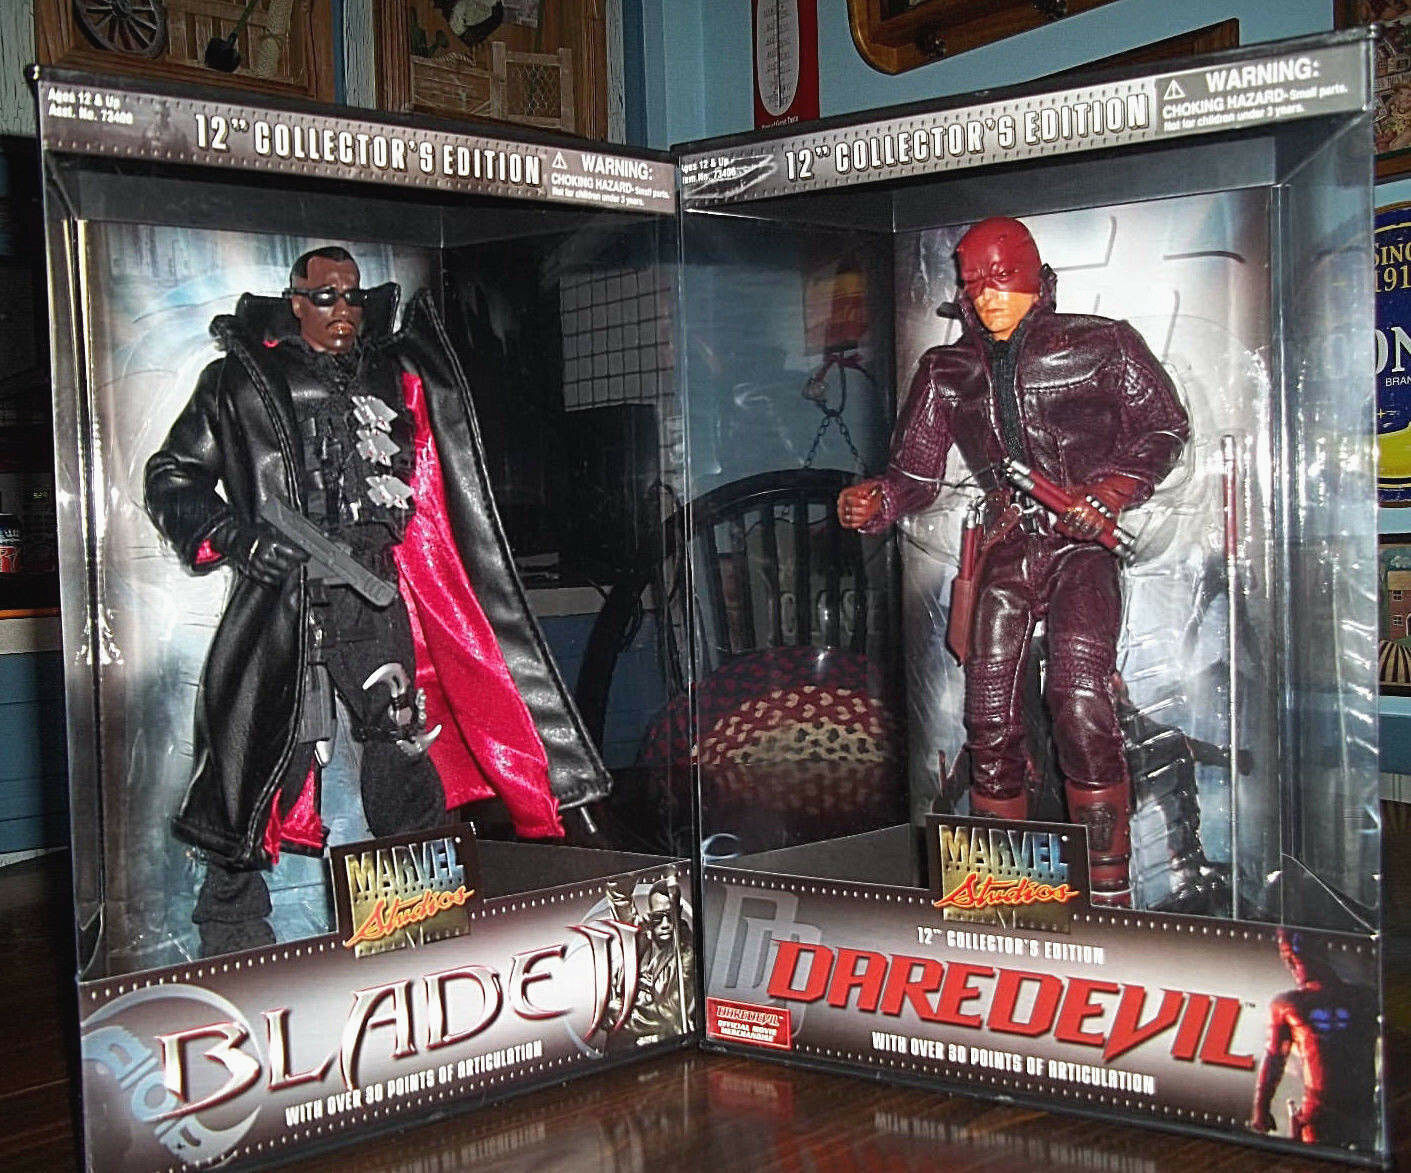 BLADE ll & DArotEVIL 12  COLLECTORS EDITION by Marvel